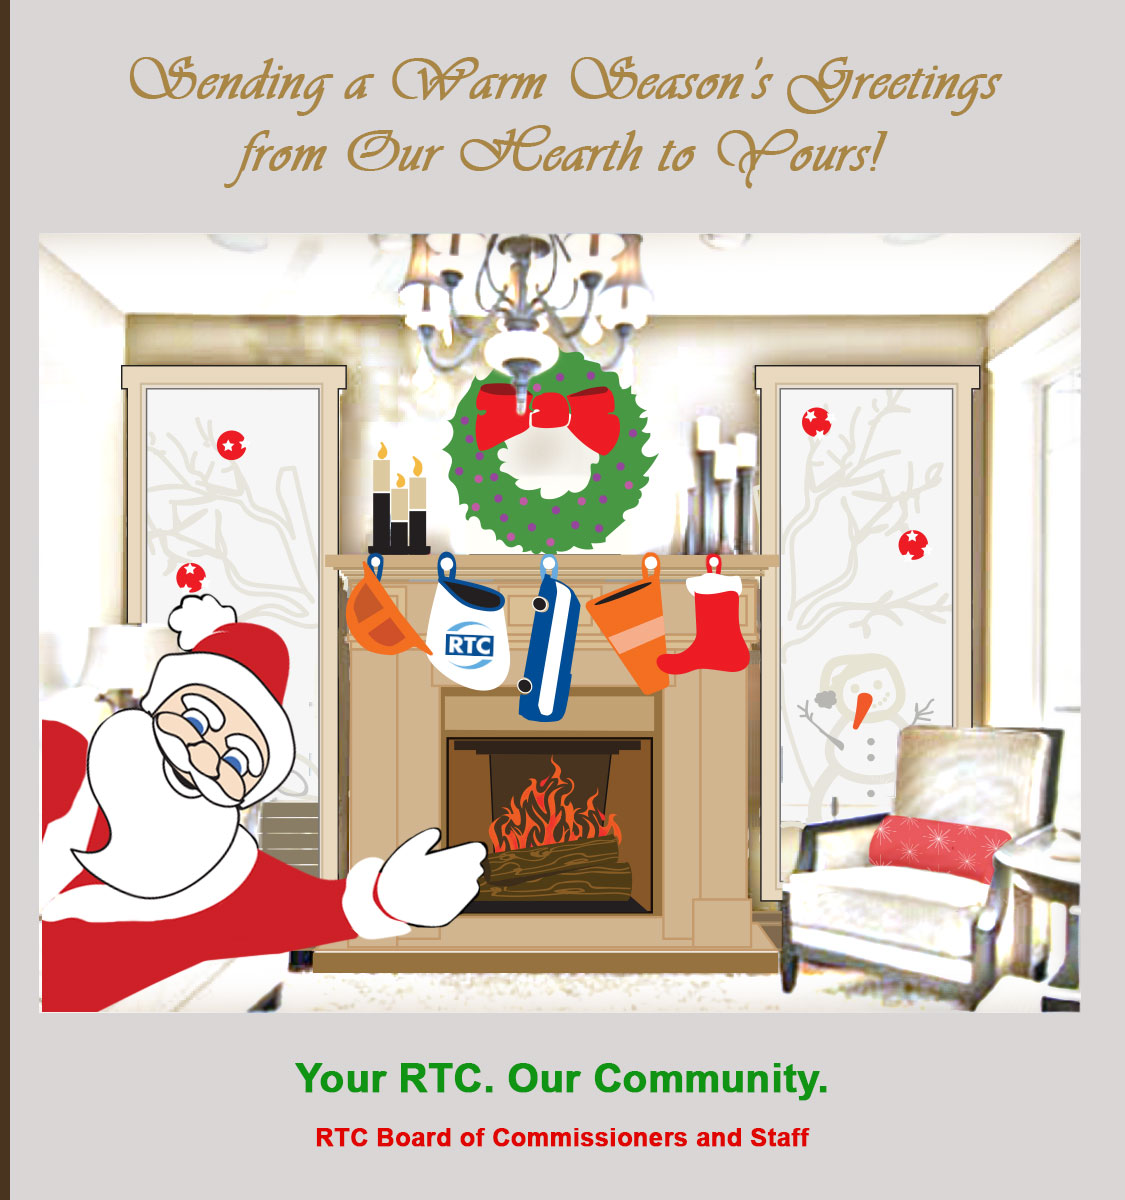 Santa waves in front of a fireplace with an RTC stocking